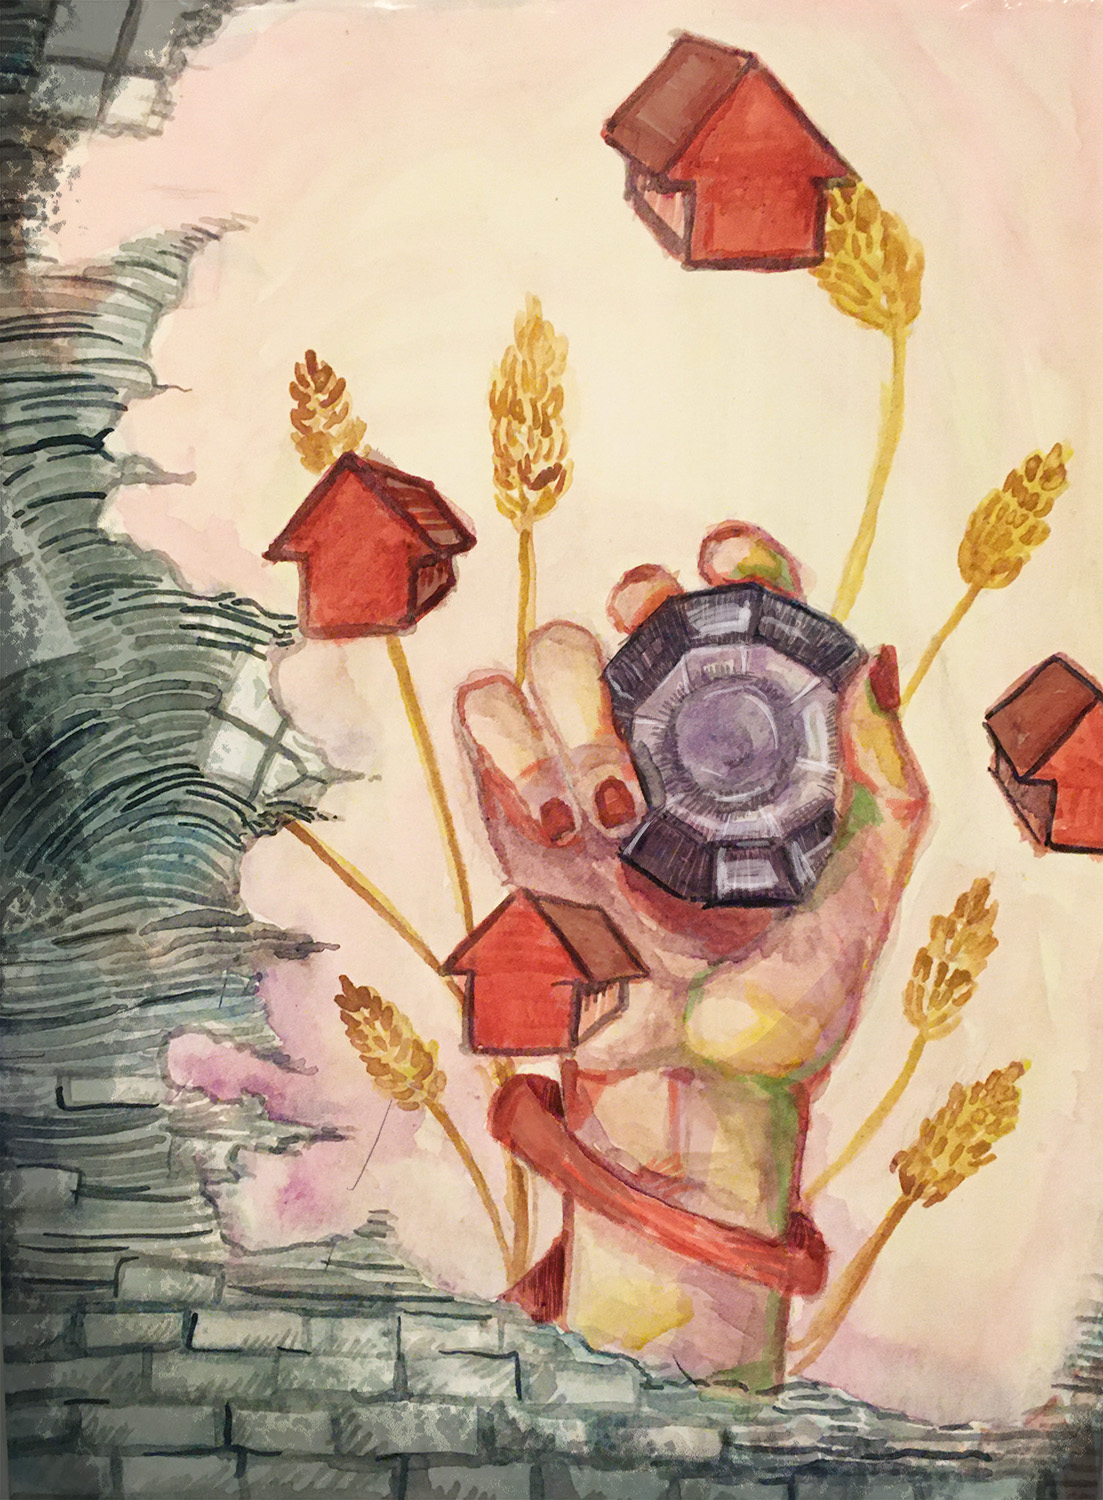 Through a hole in a brick wall, a woman's hand grasps a gem. The hand surrounded by small houses and leaves of grain.